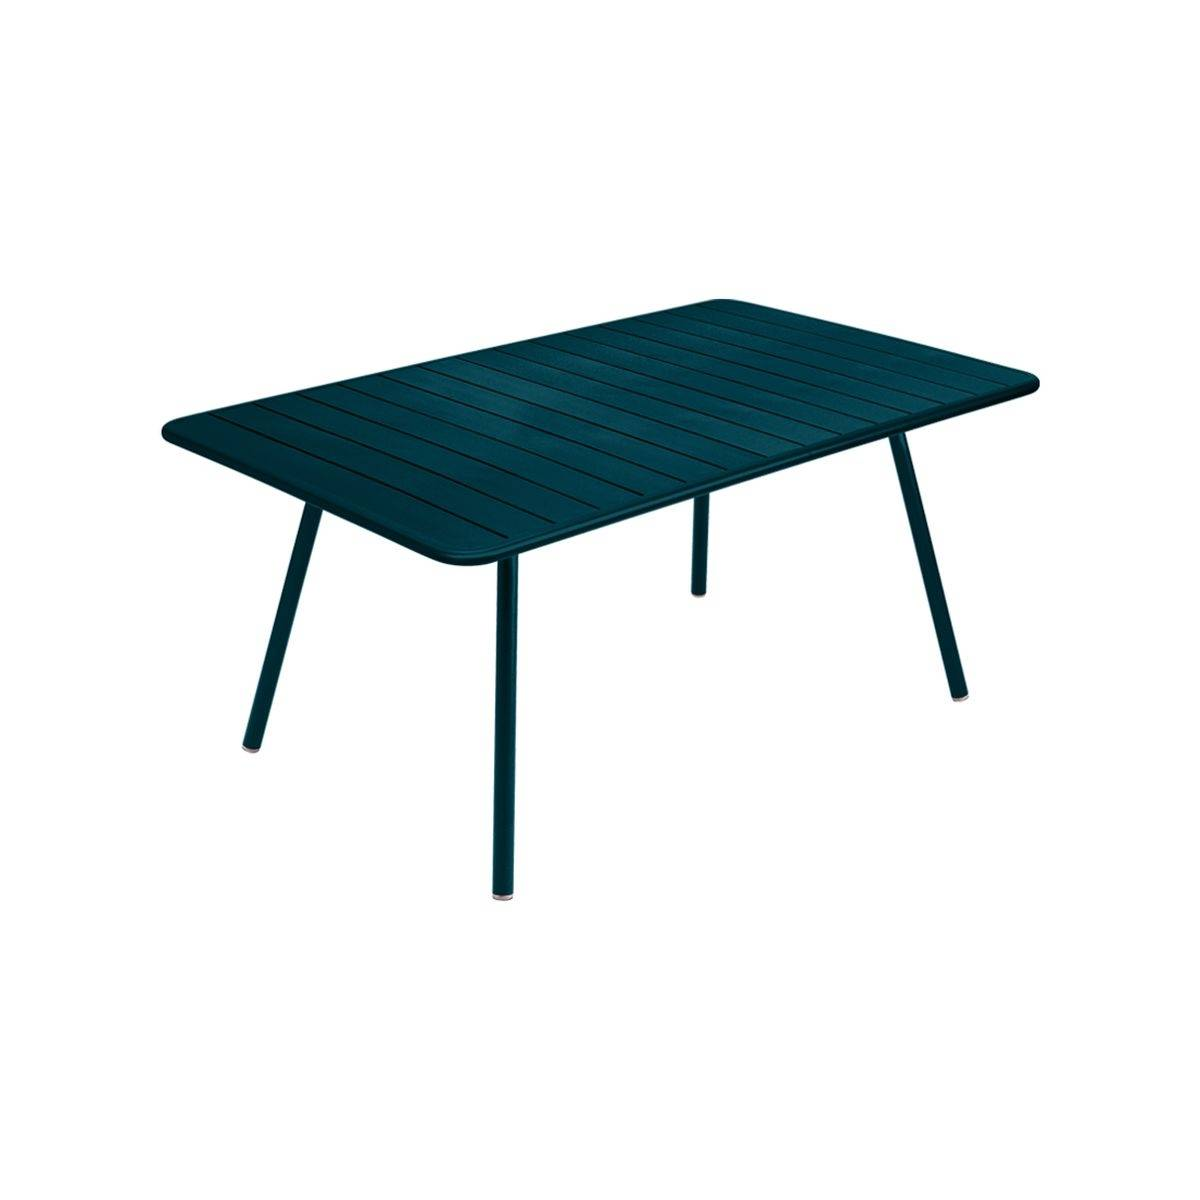 Fermob Luxembourg Table 165 x 100cm | Outdoor Furniture ...